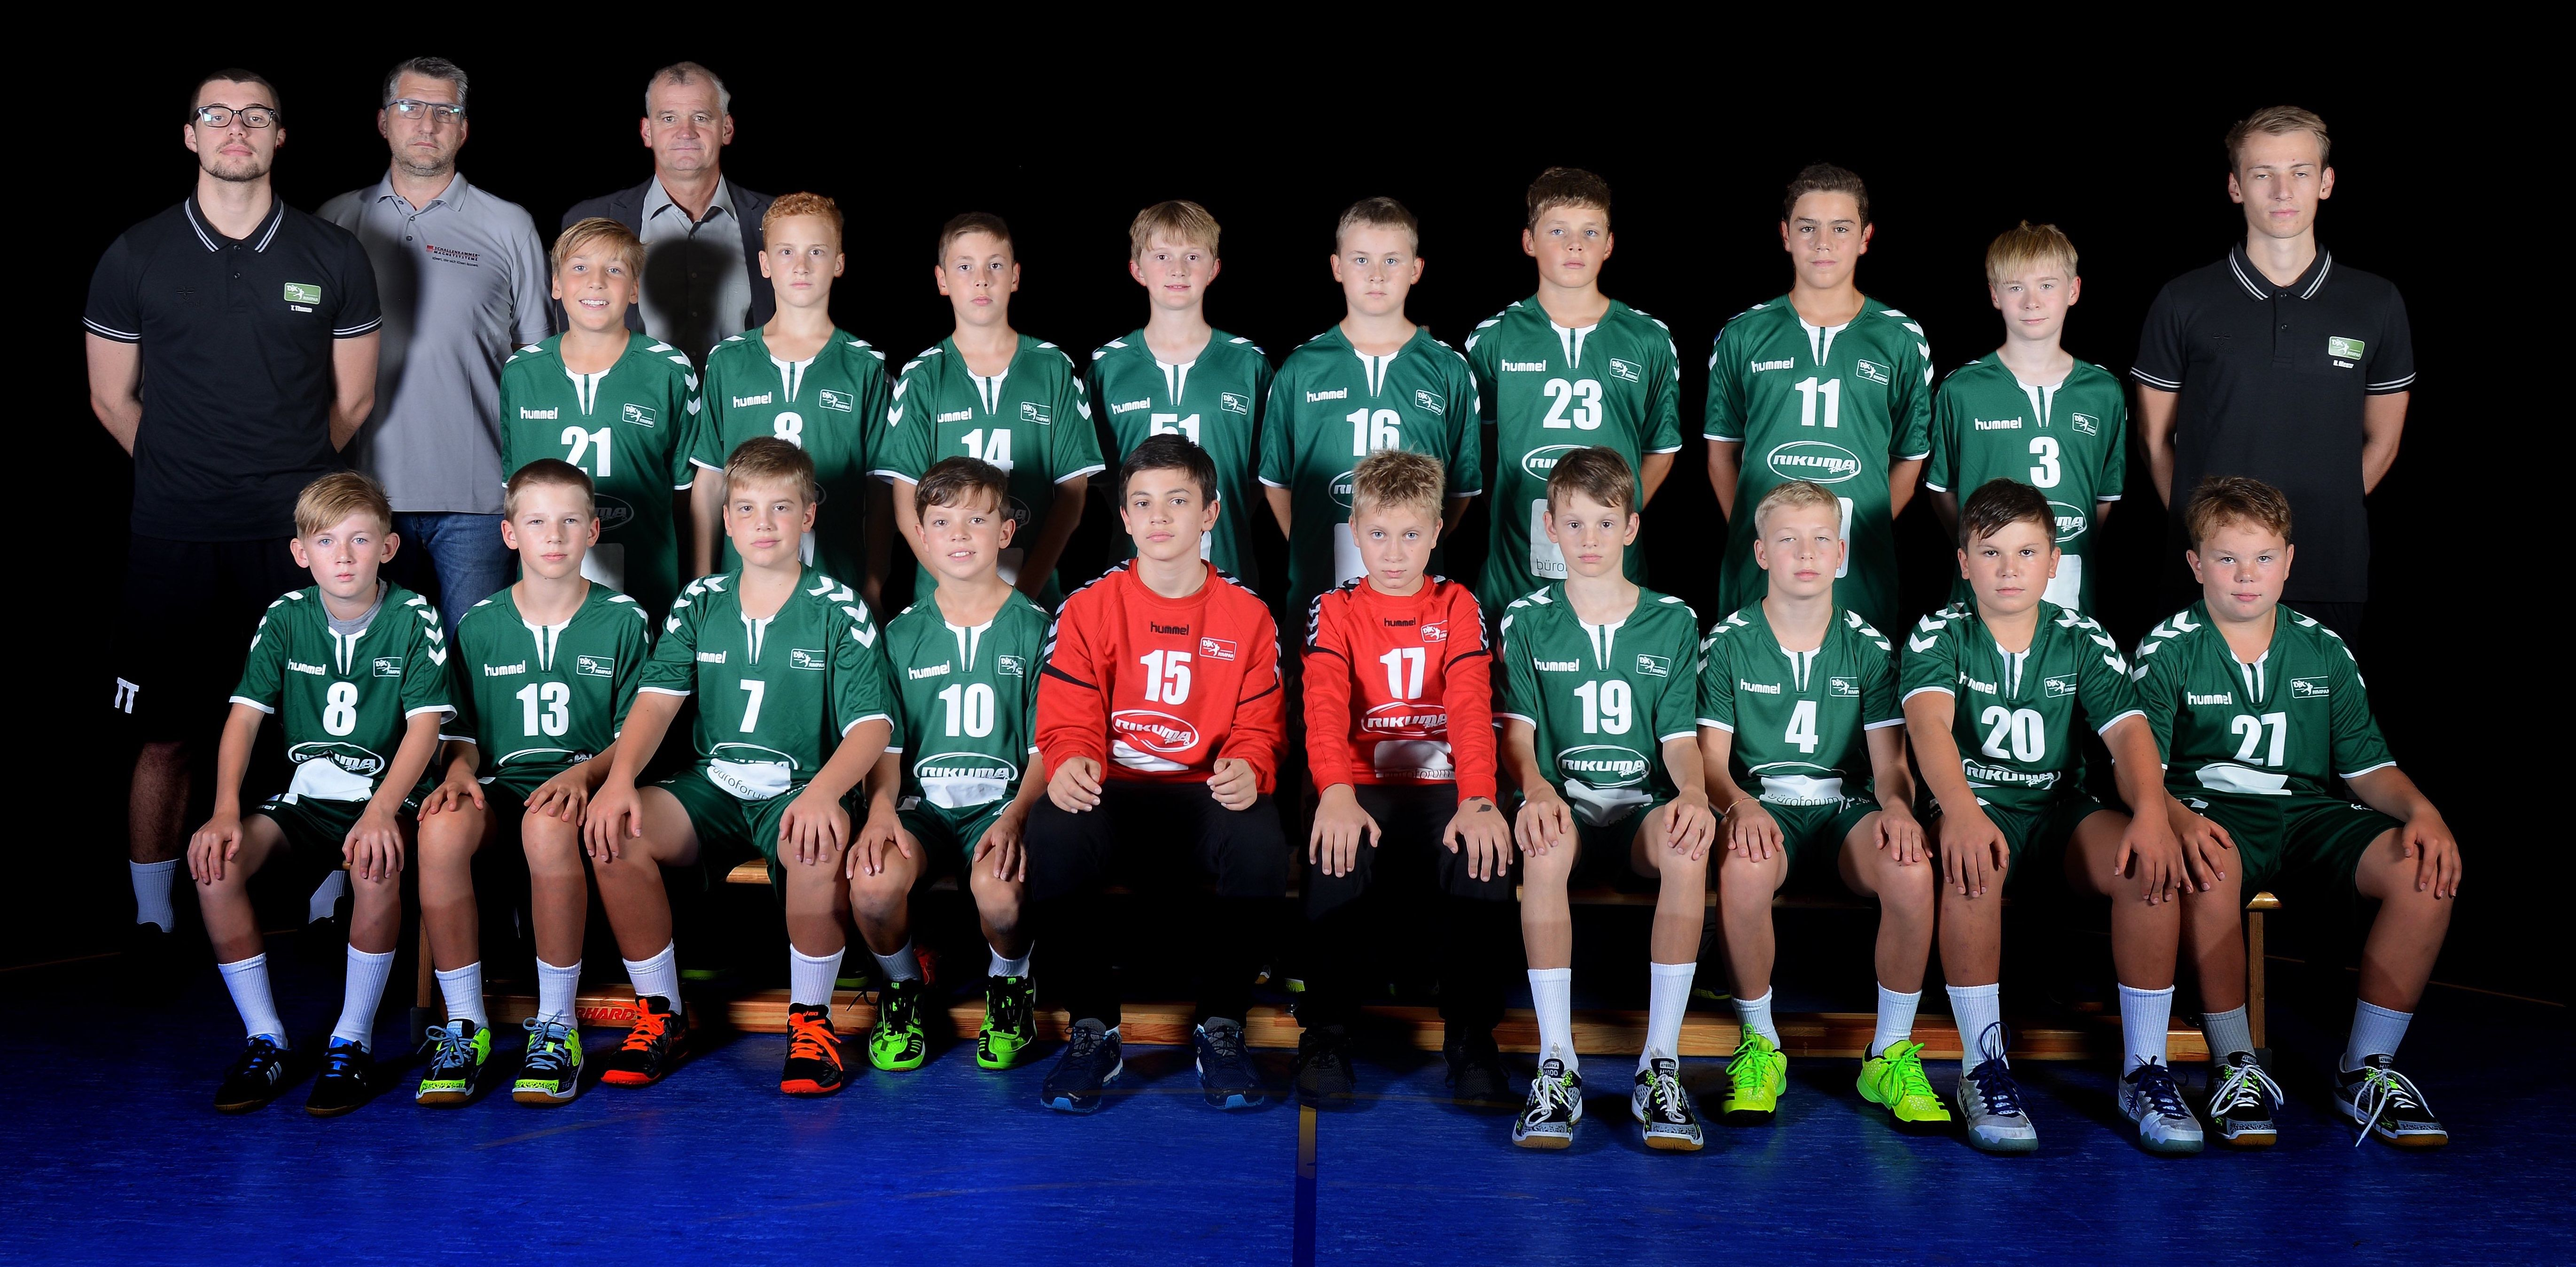 Teamfoto mD 19:20 Homepage_neu